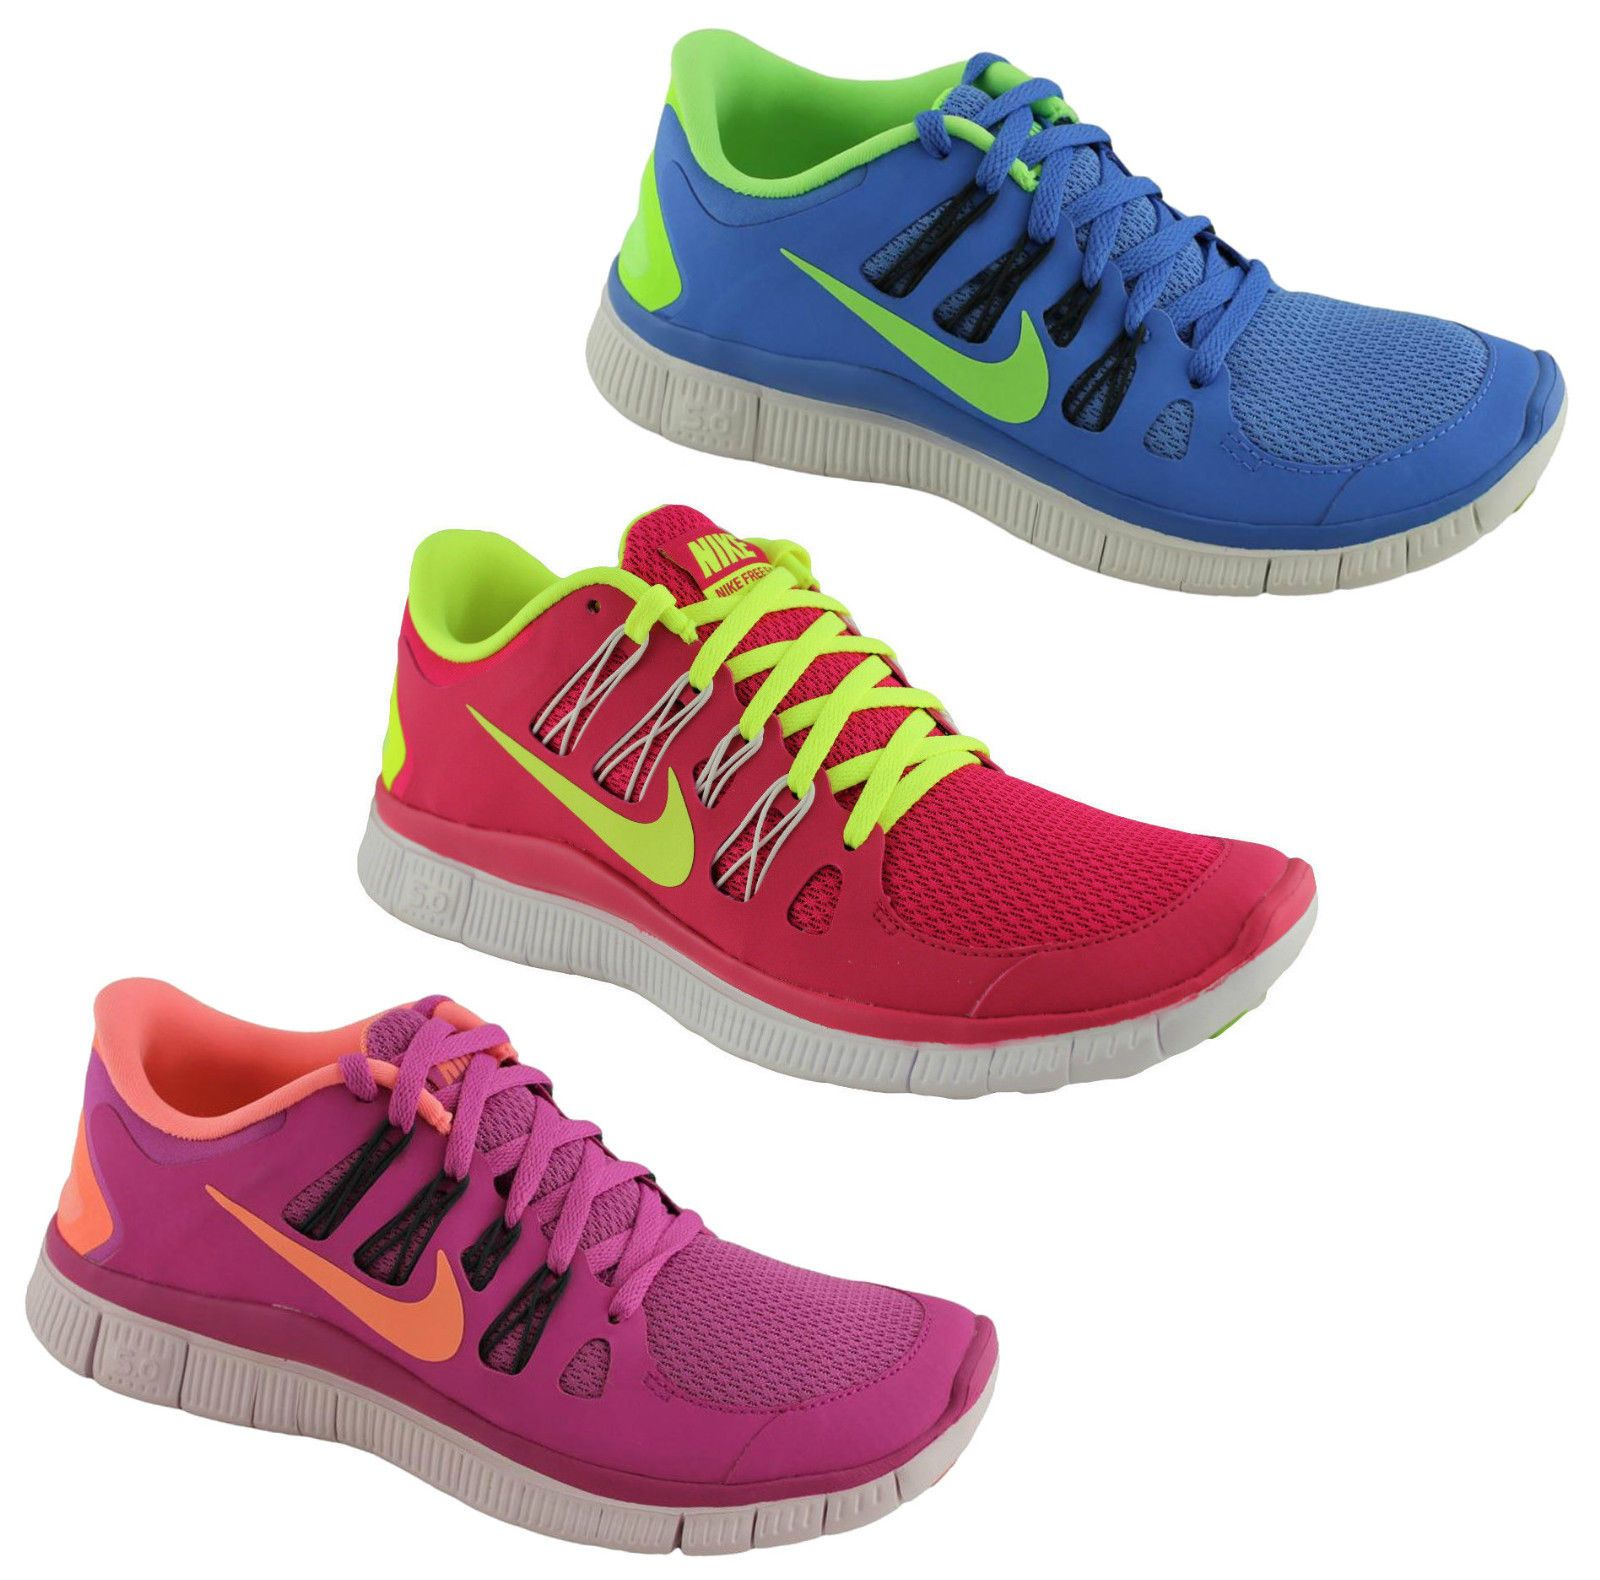 nike free 5.0+ womens running shoe ebay scams